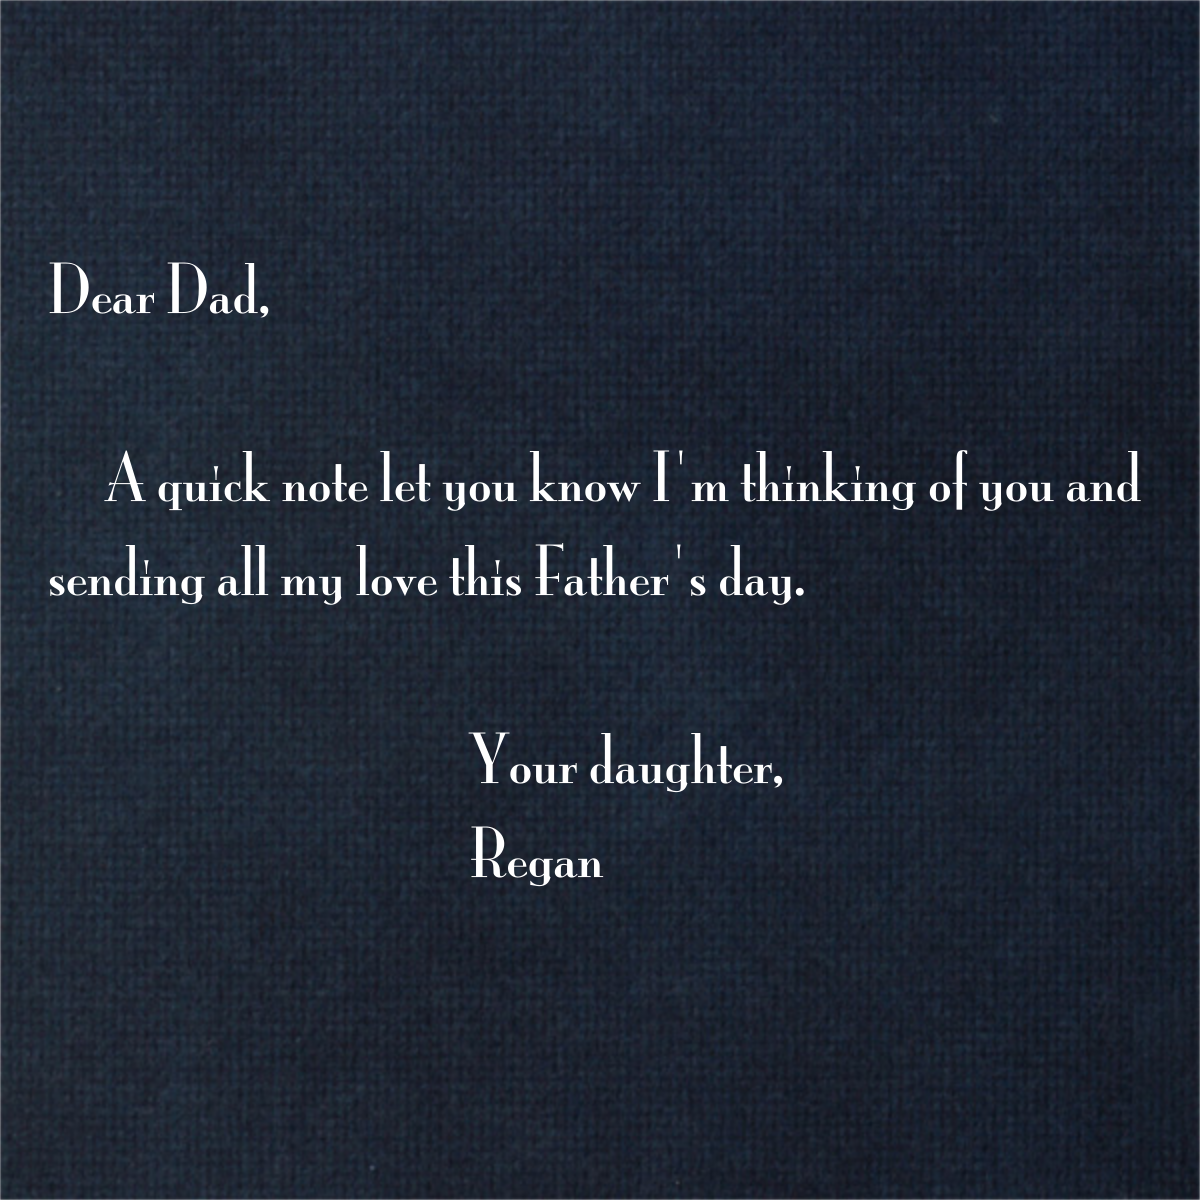 Loafers and Brogues (Midnight) - Paperless Post - Father's Day - card back